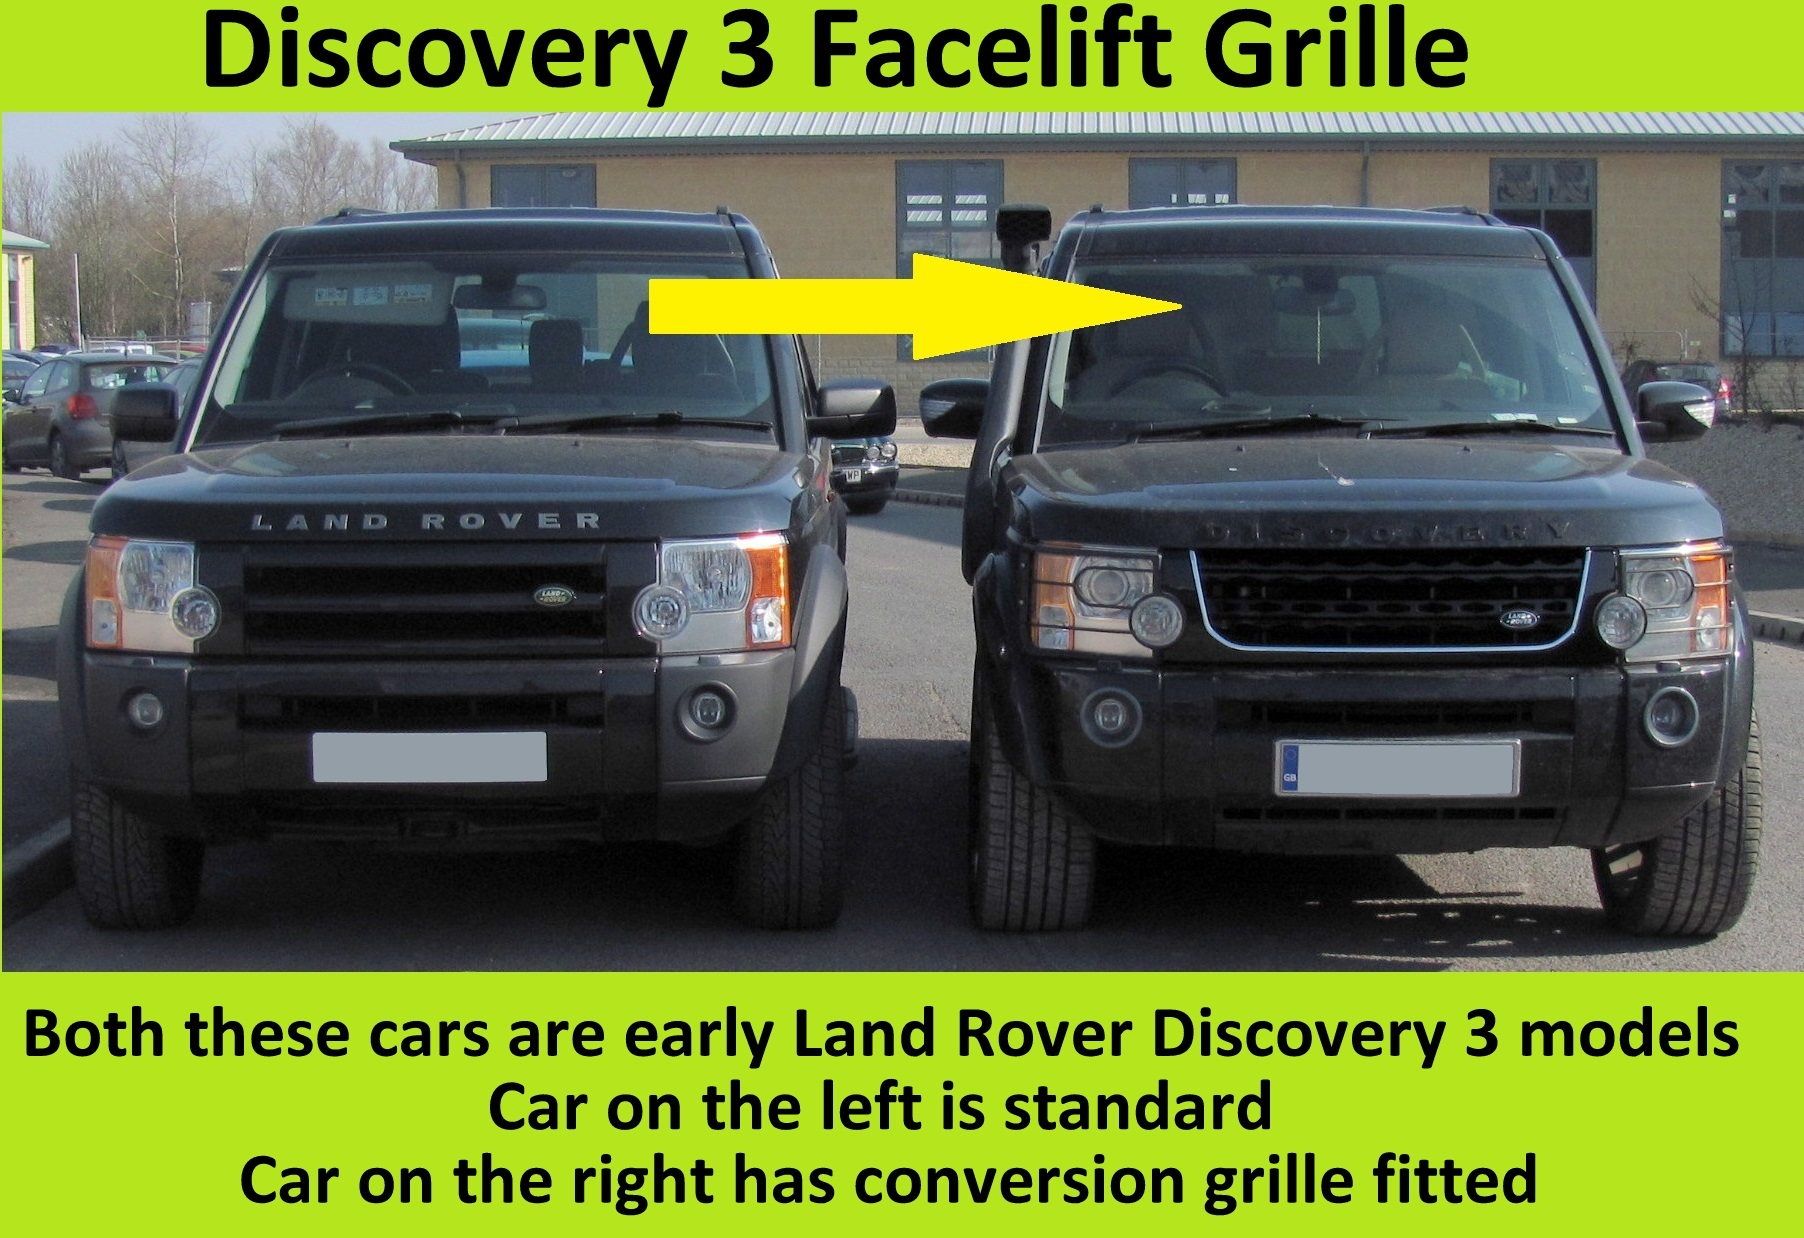 Gloss Black Disco 4 2014 facelift style front grille for Land Rover